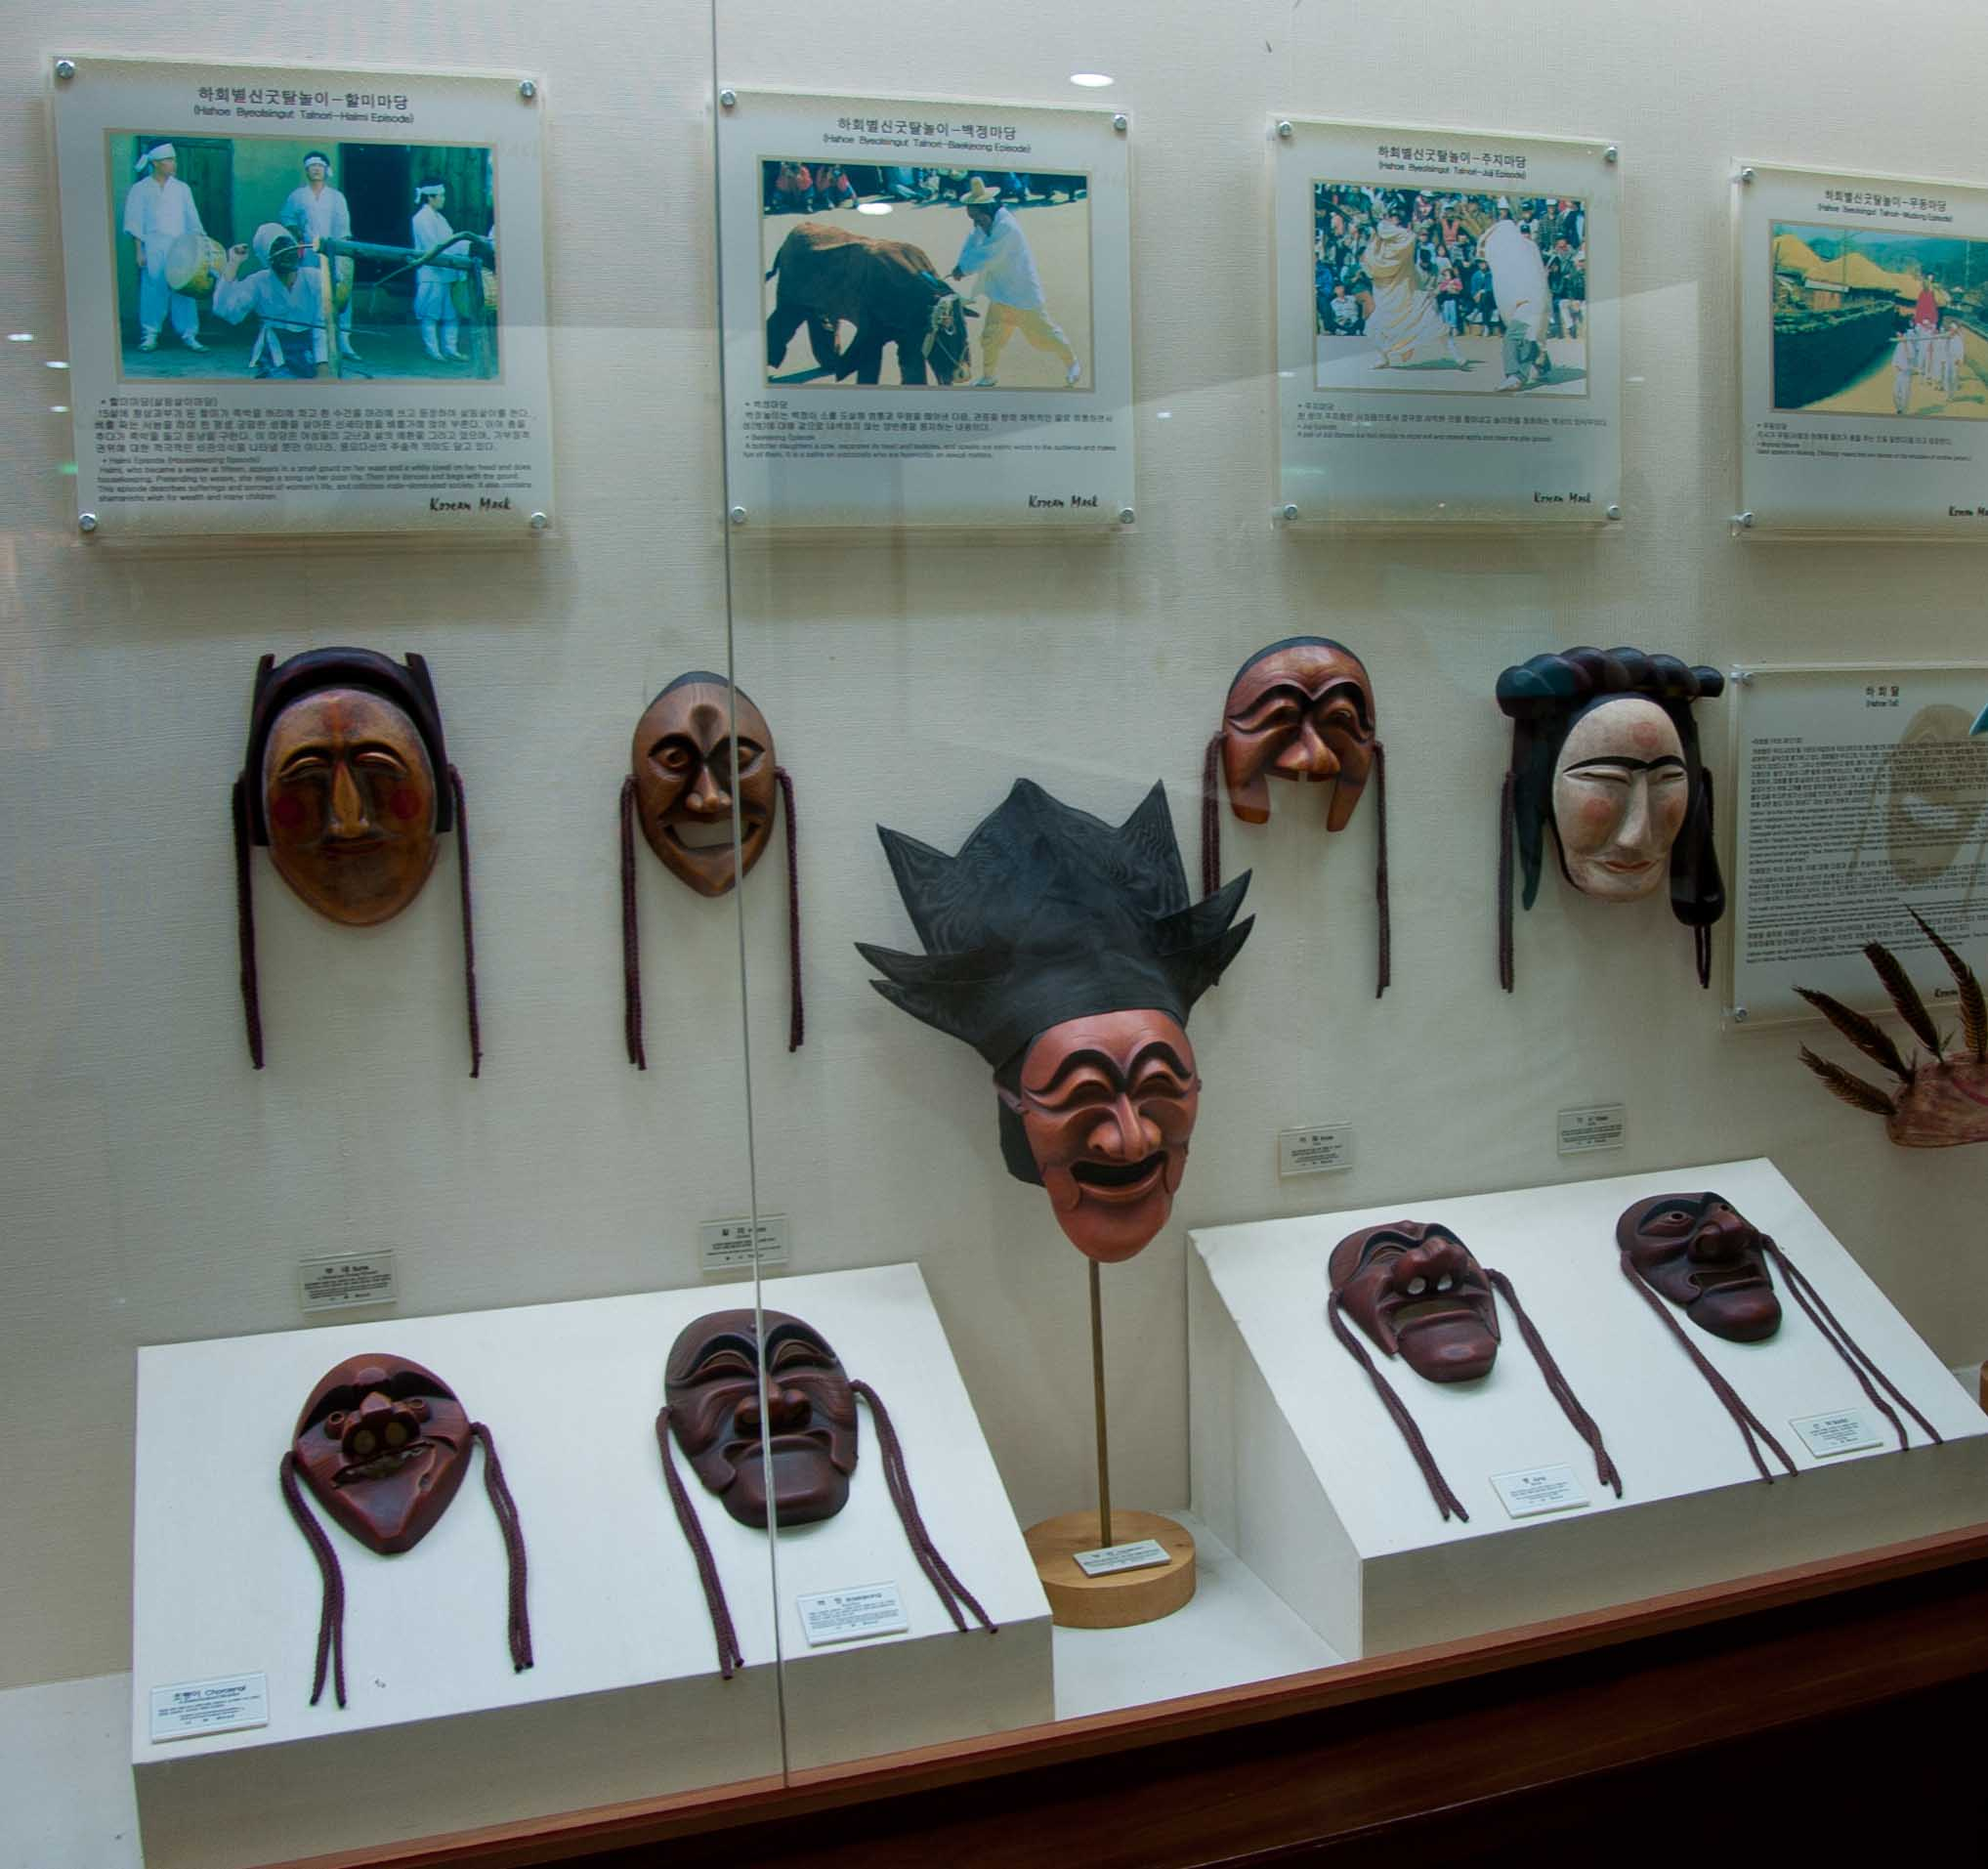 Hahoe Village and Mask Museum, South Korea